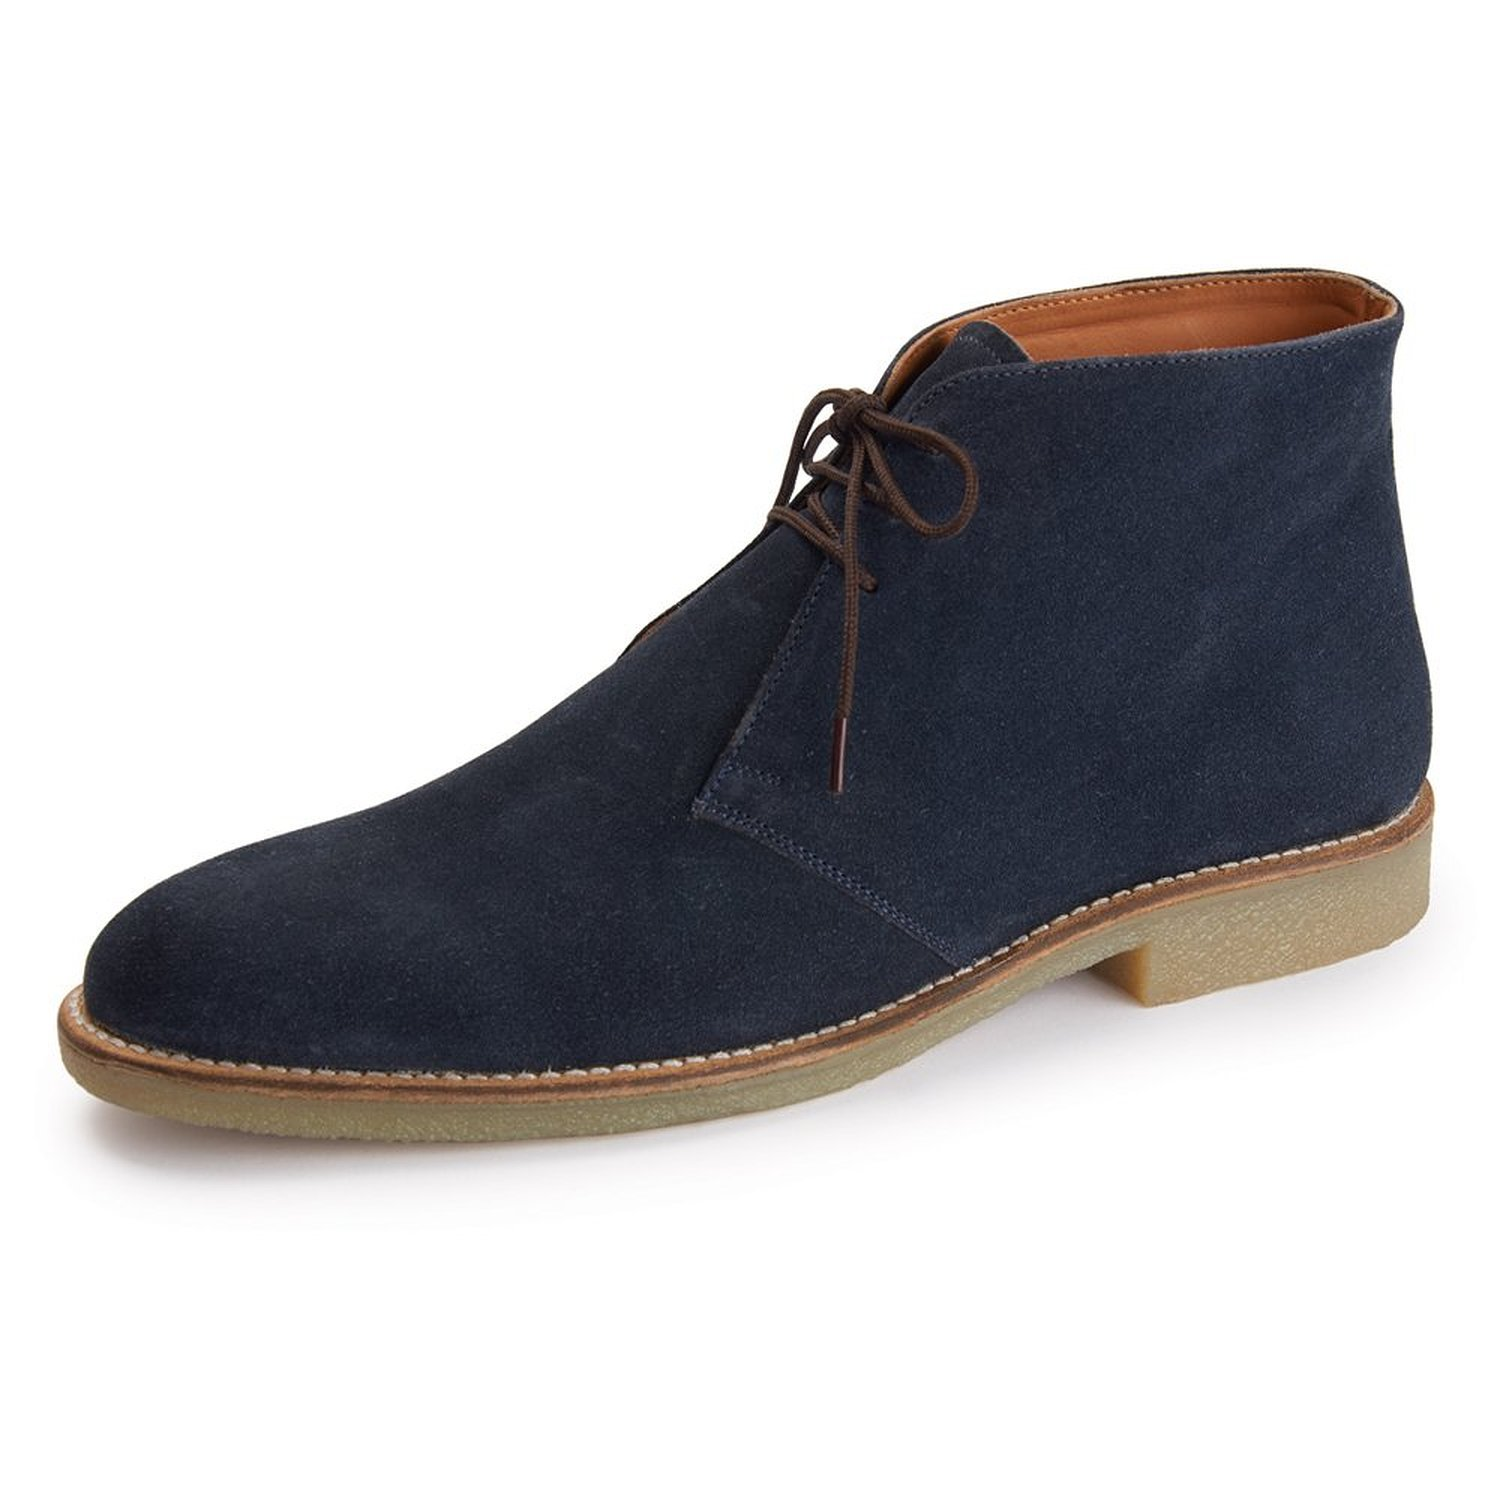 handmade mens chukka suede leather boots mens fashion